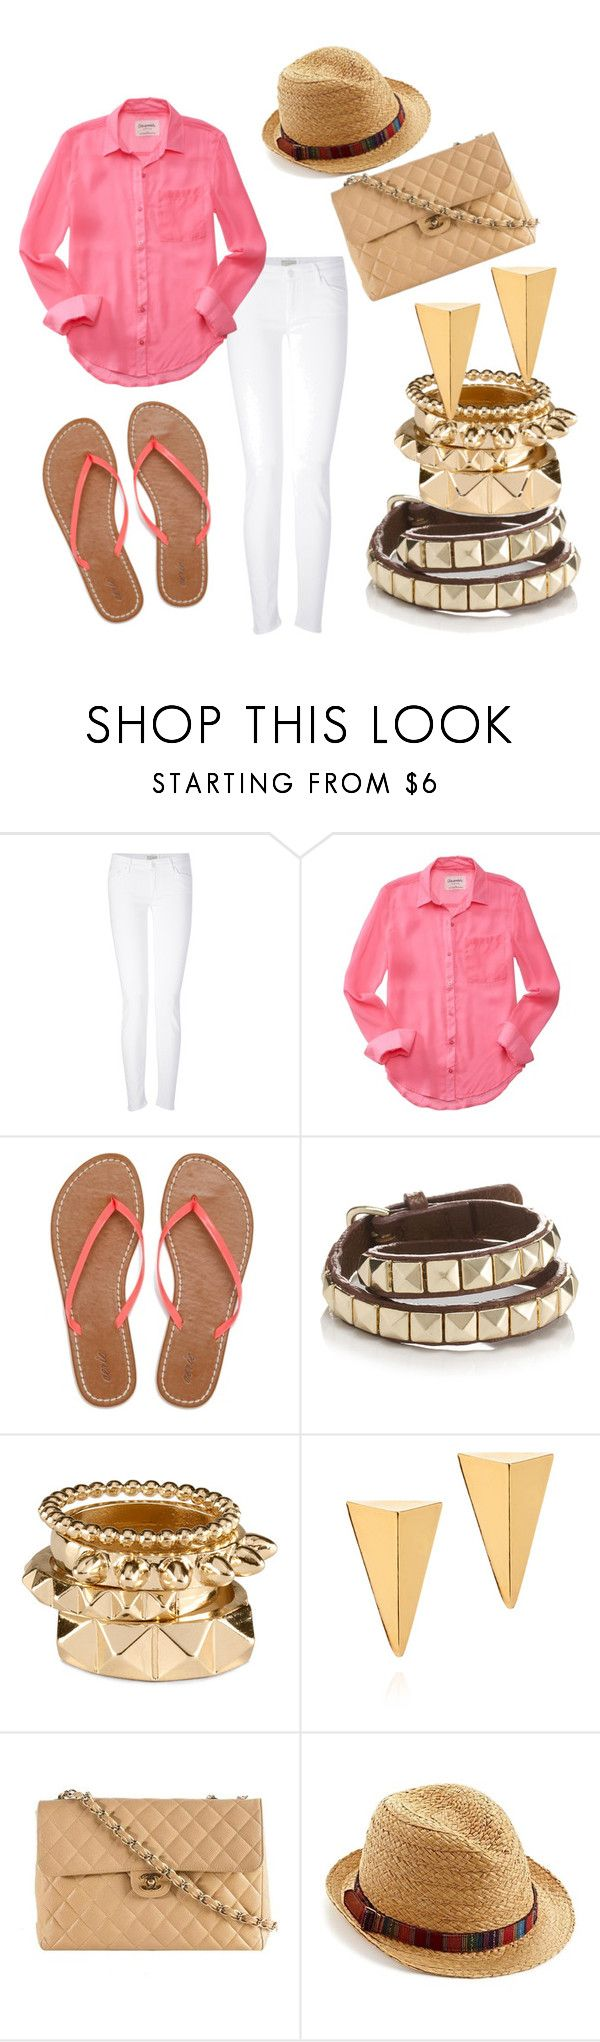 """""""pink-y promise"""" by sophisticated106 ❤ liked on Polyvore featuring Mother, Aéropostale, American Eagle Outfitters, Accessorize, H&M, John & Pearl, Chanel and Lucky Brand"""